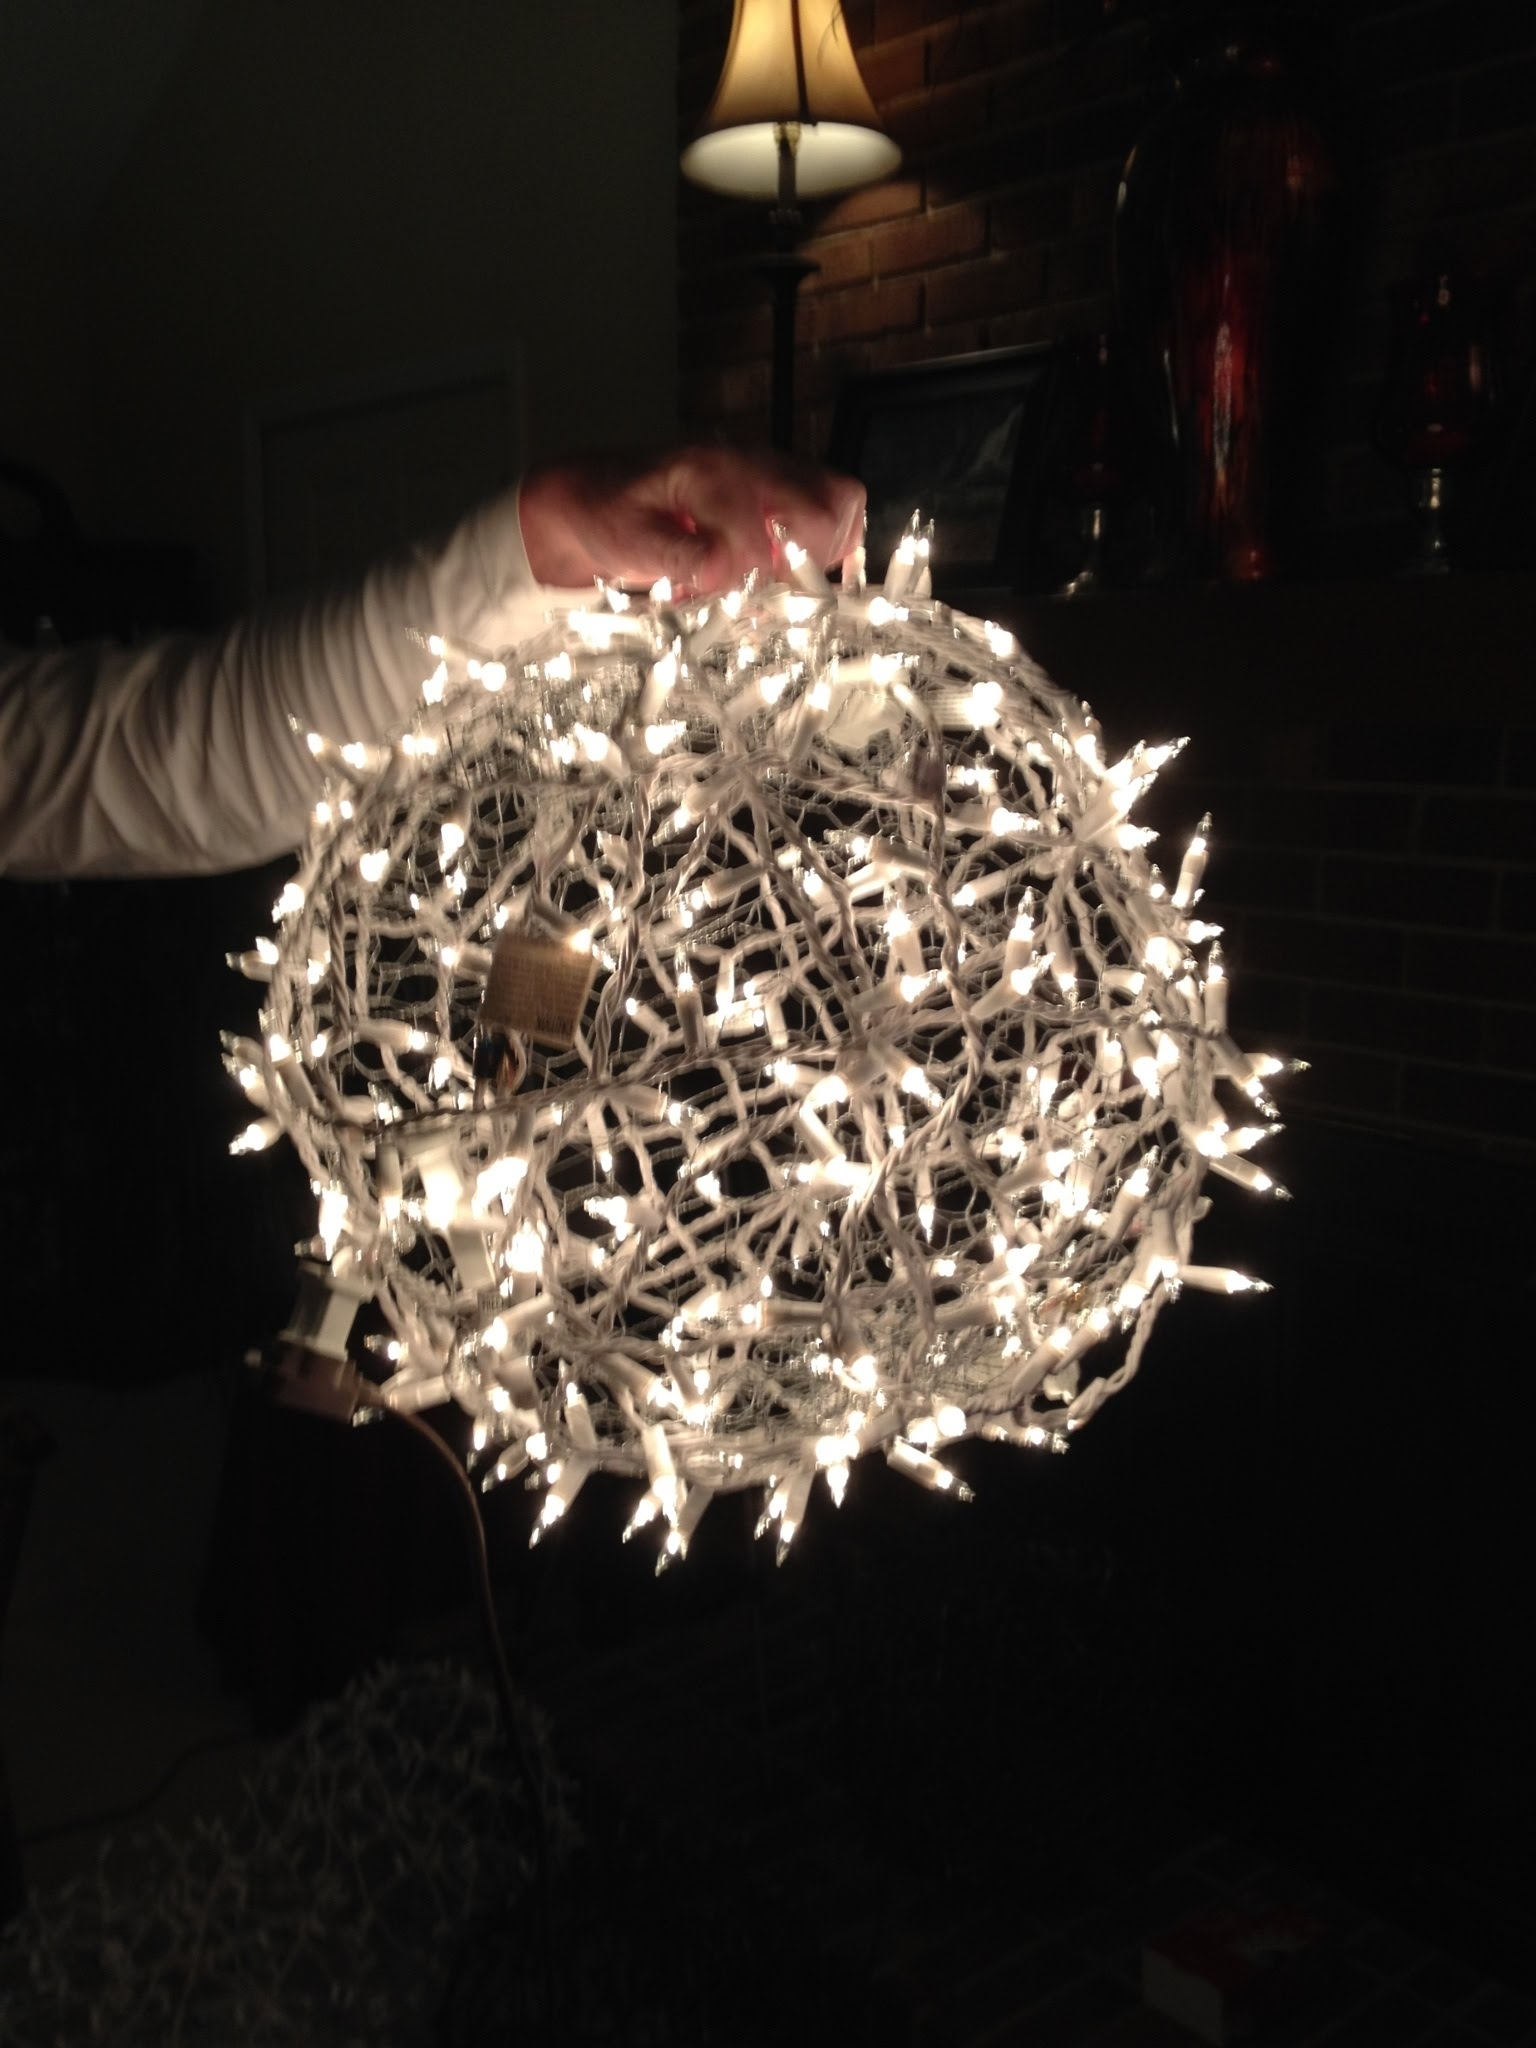 Diy : Sphere Christmas Lights Led Suppliers 755585783B60A Outdoor Intended For Outdoor Hanging Sphere Lights (View 3 of 15)